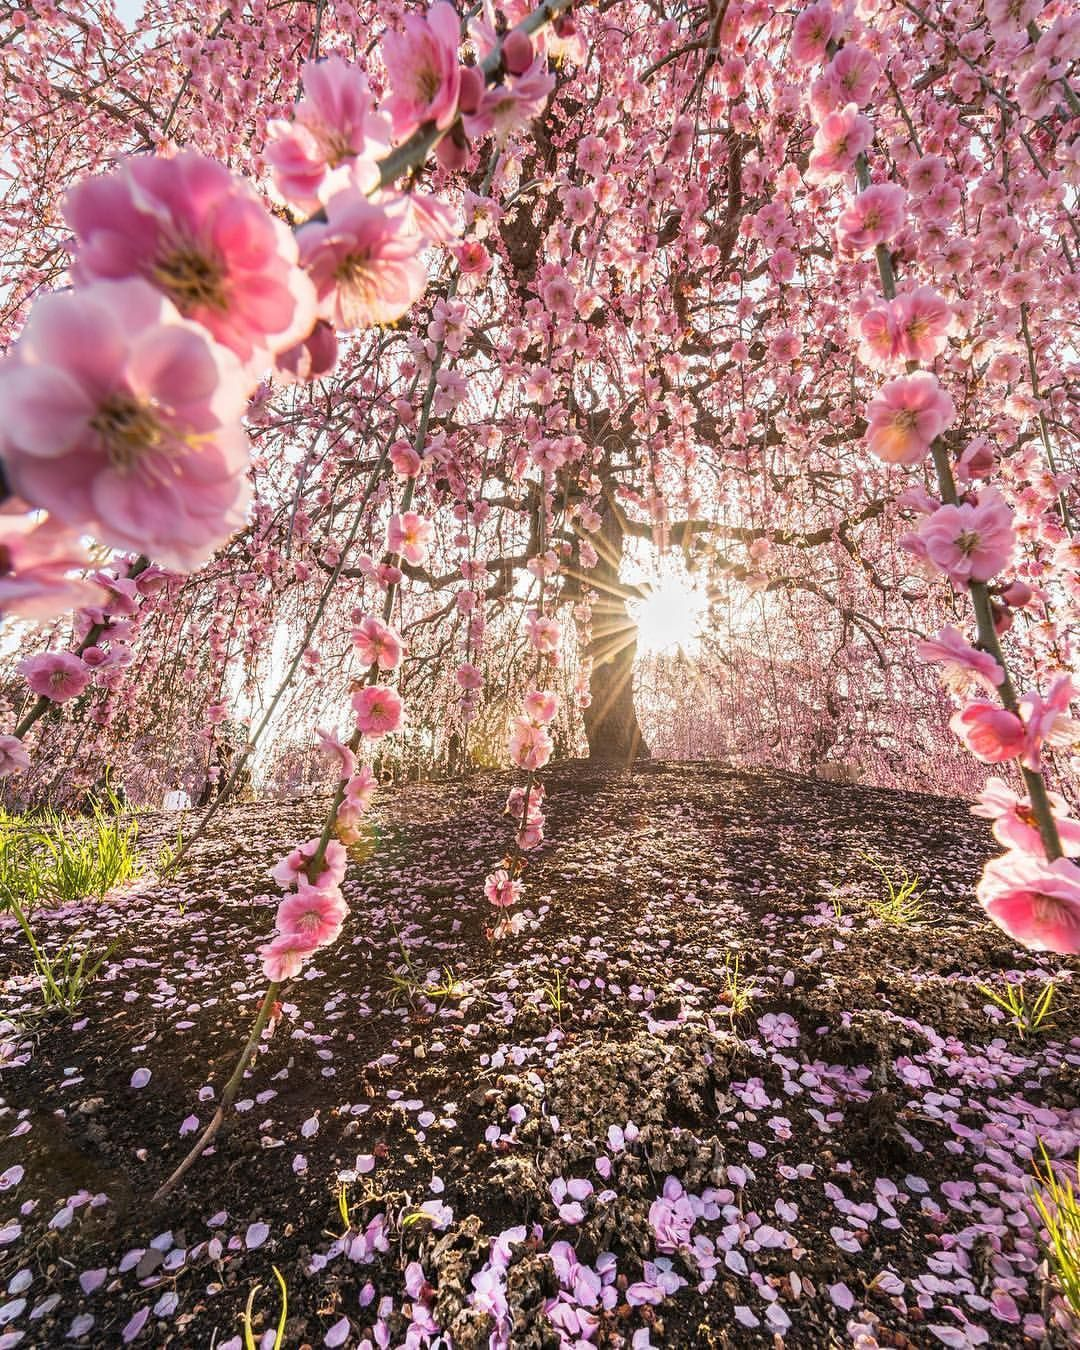 Blossom In The City Of Suzuka Part Of The Mie Prefecture In Japan Photo By Daisukephotography Explore Share Inspi Flowering Trees Beautiful Tree Nature